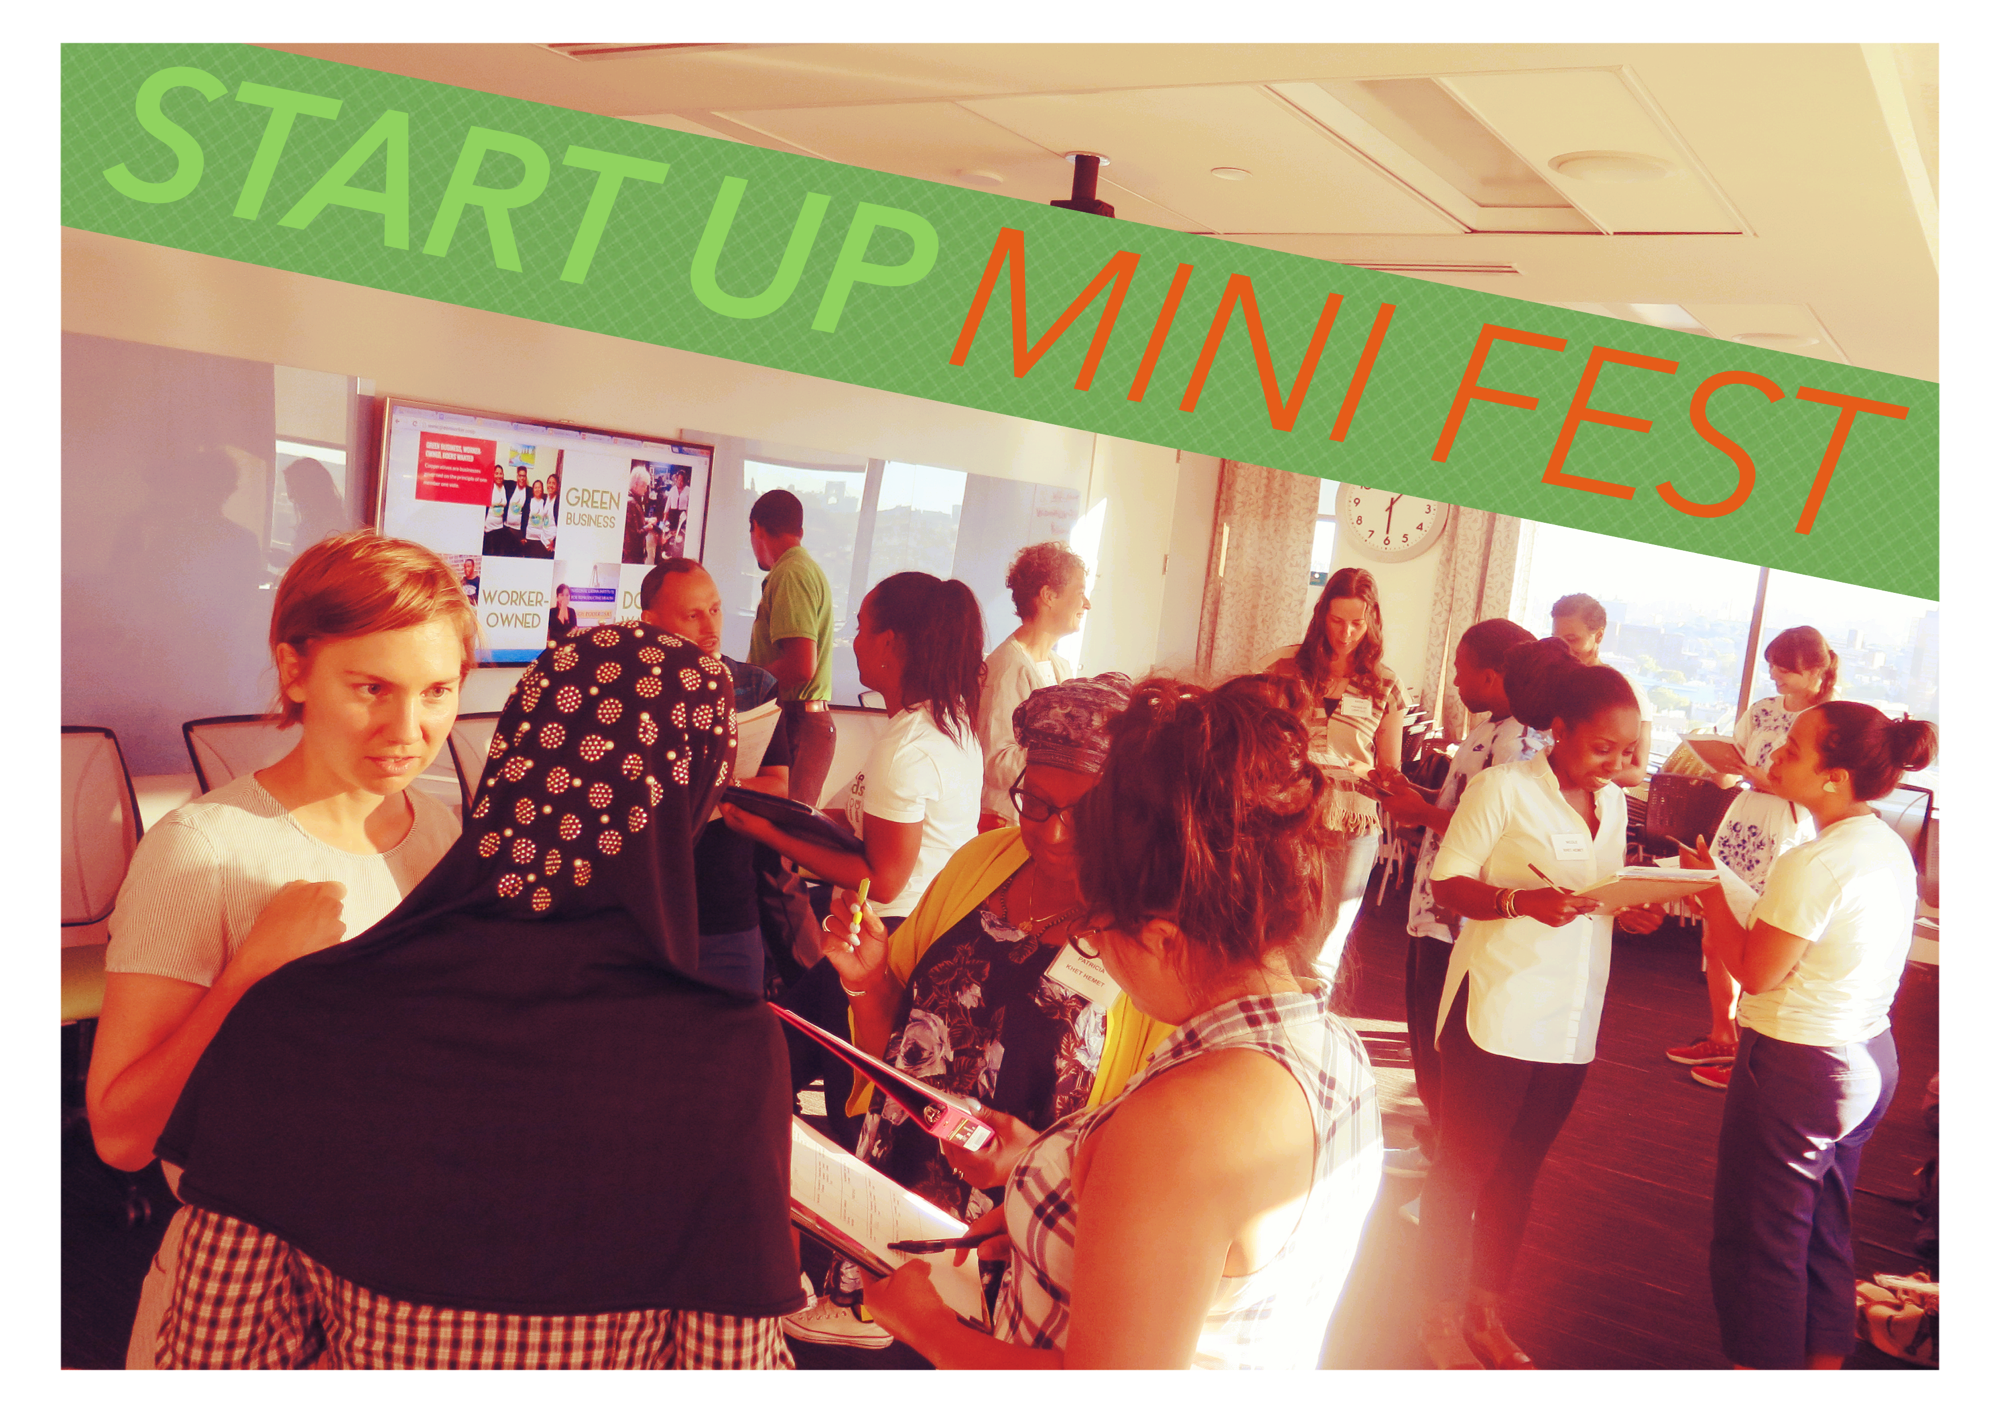 start_up_mini_fest_final_edit_border.png